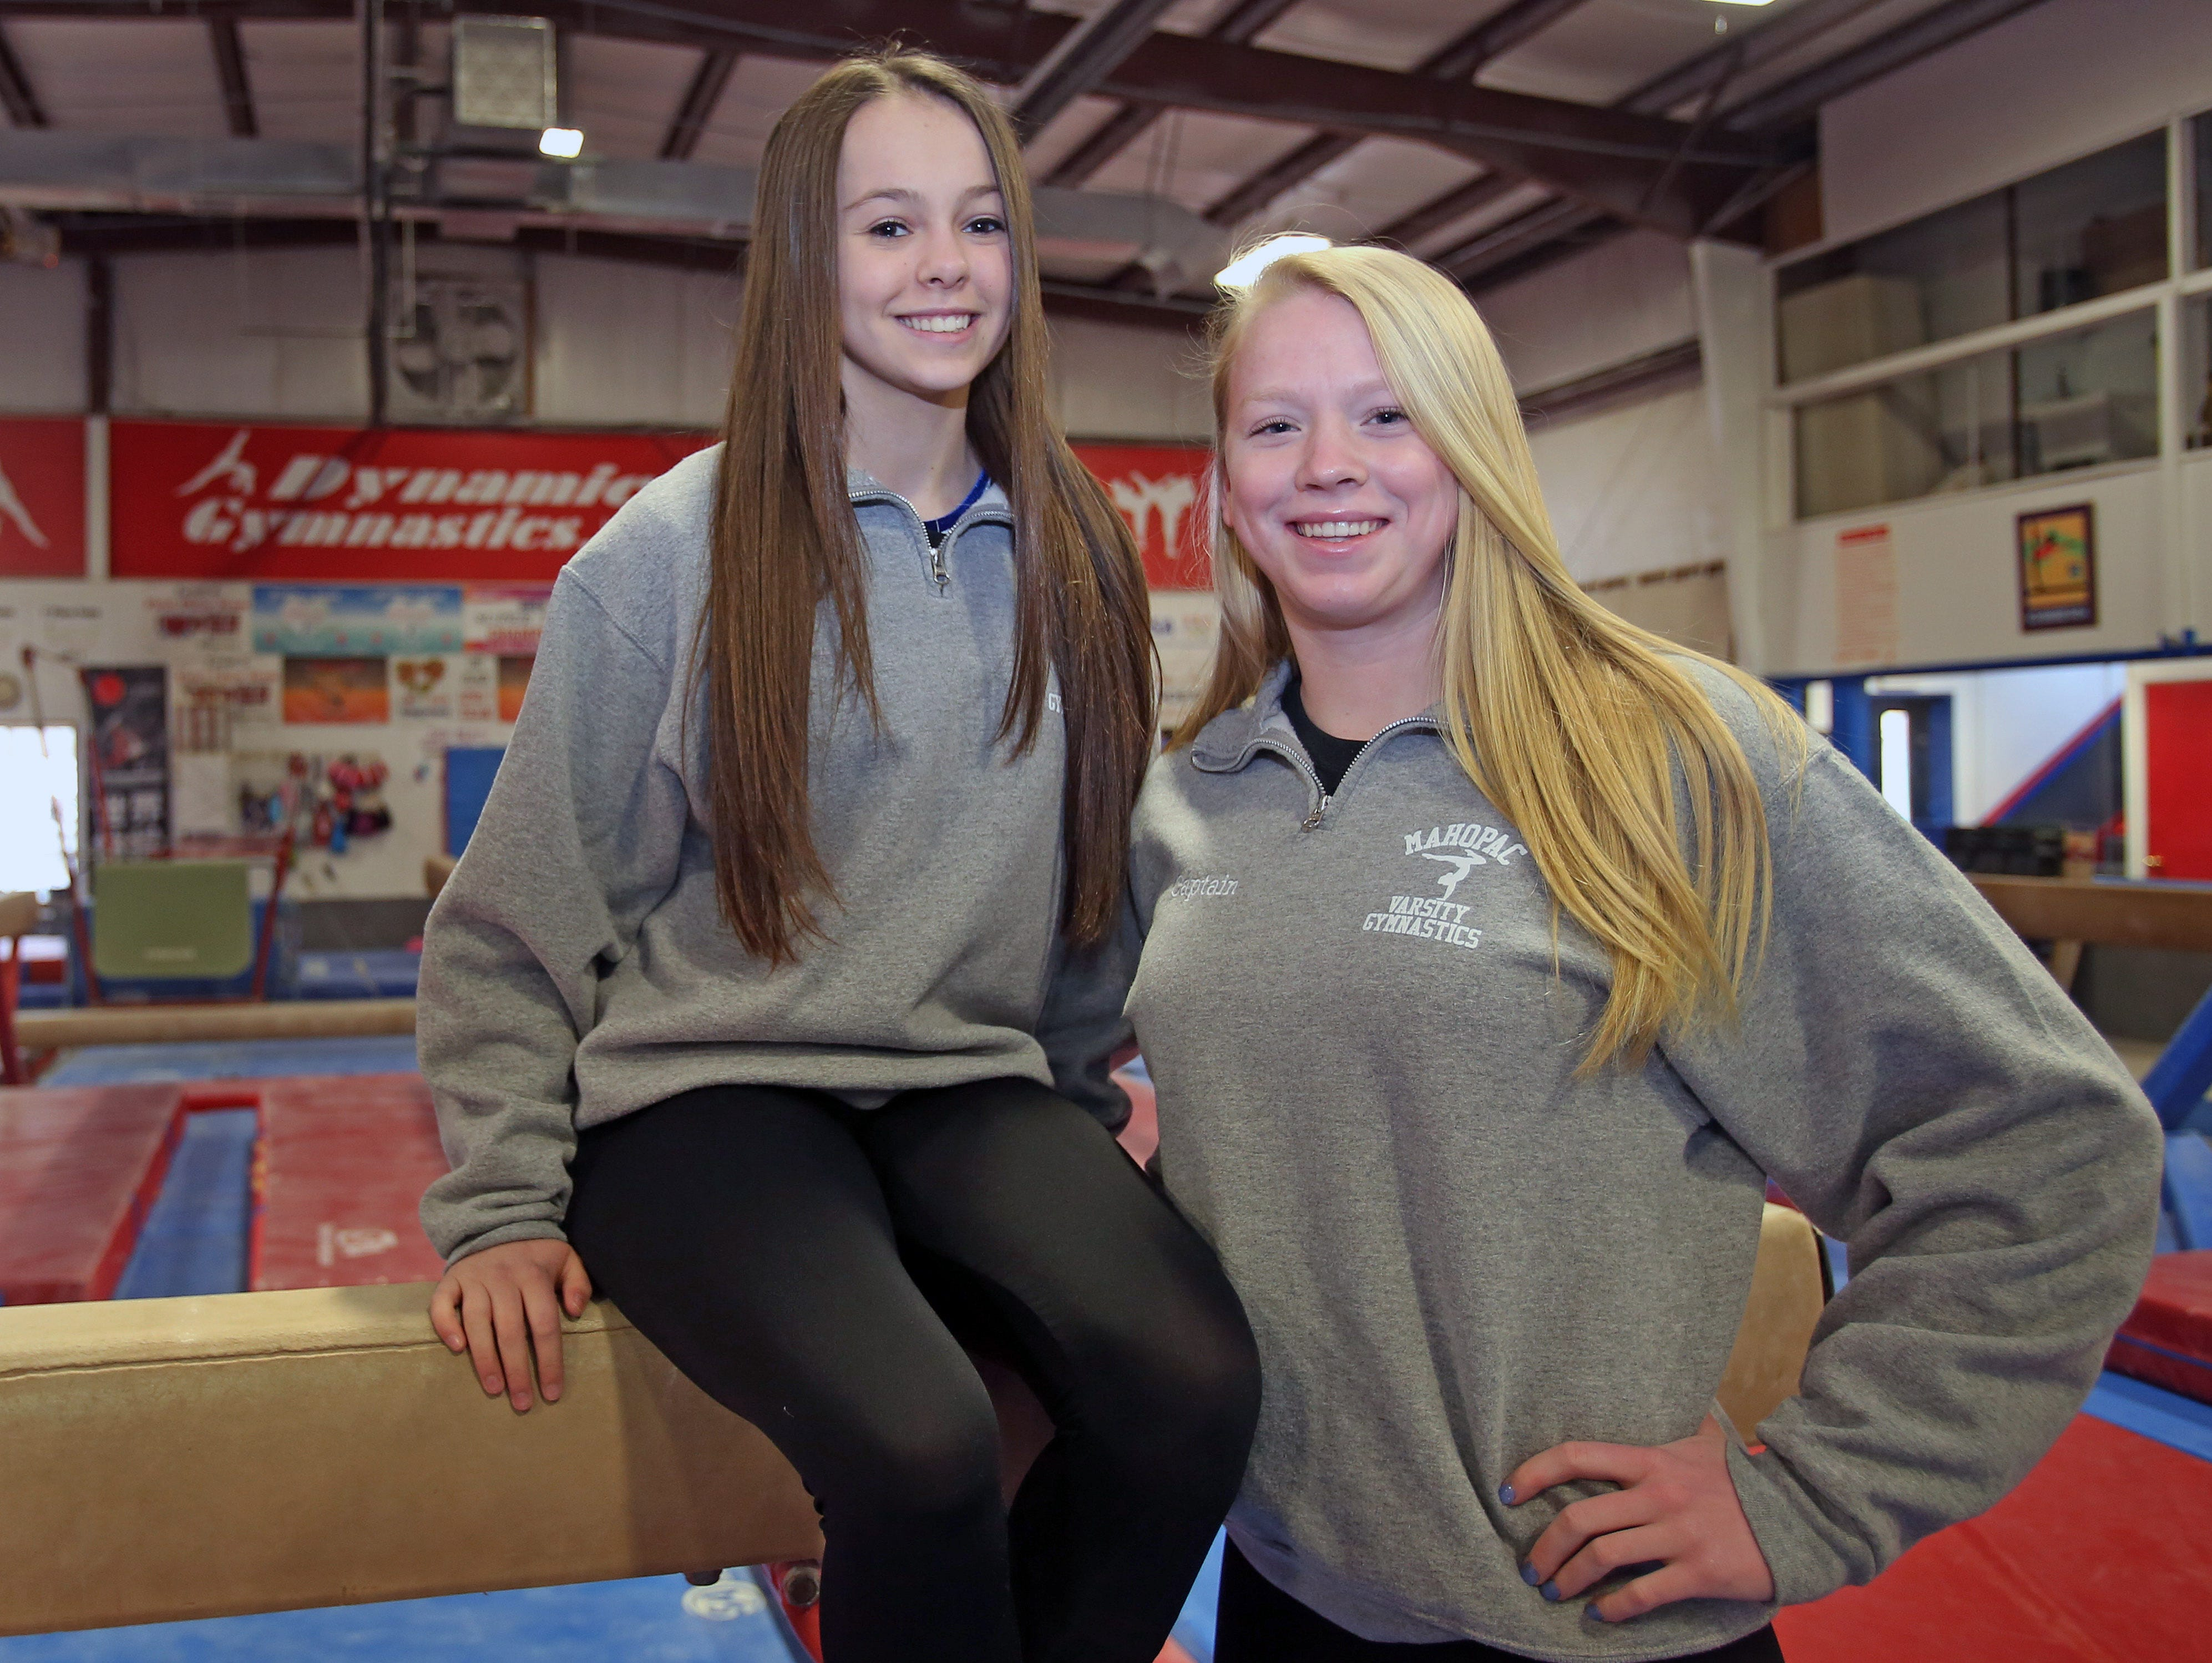 From left, Mahopac junior Callie Johanson and senior Katherine Dorovitsine are the Gymnastics co-players of the year. Johnson and Dorovistsine were photographed at Dynamic Gymnastics in Mohegan Lake on March 28, 2016.